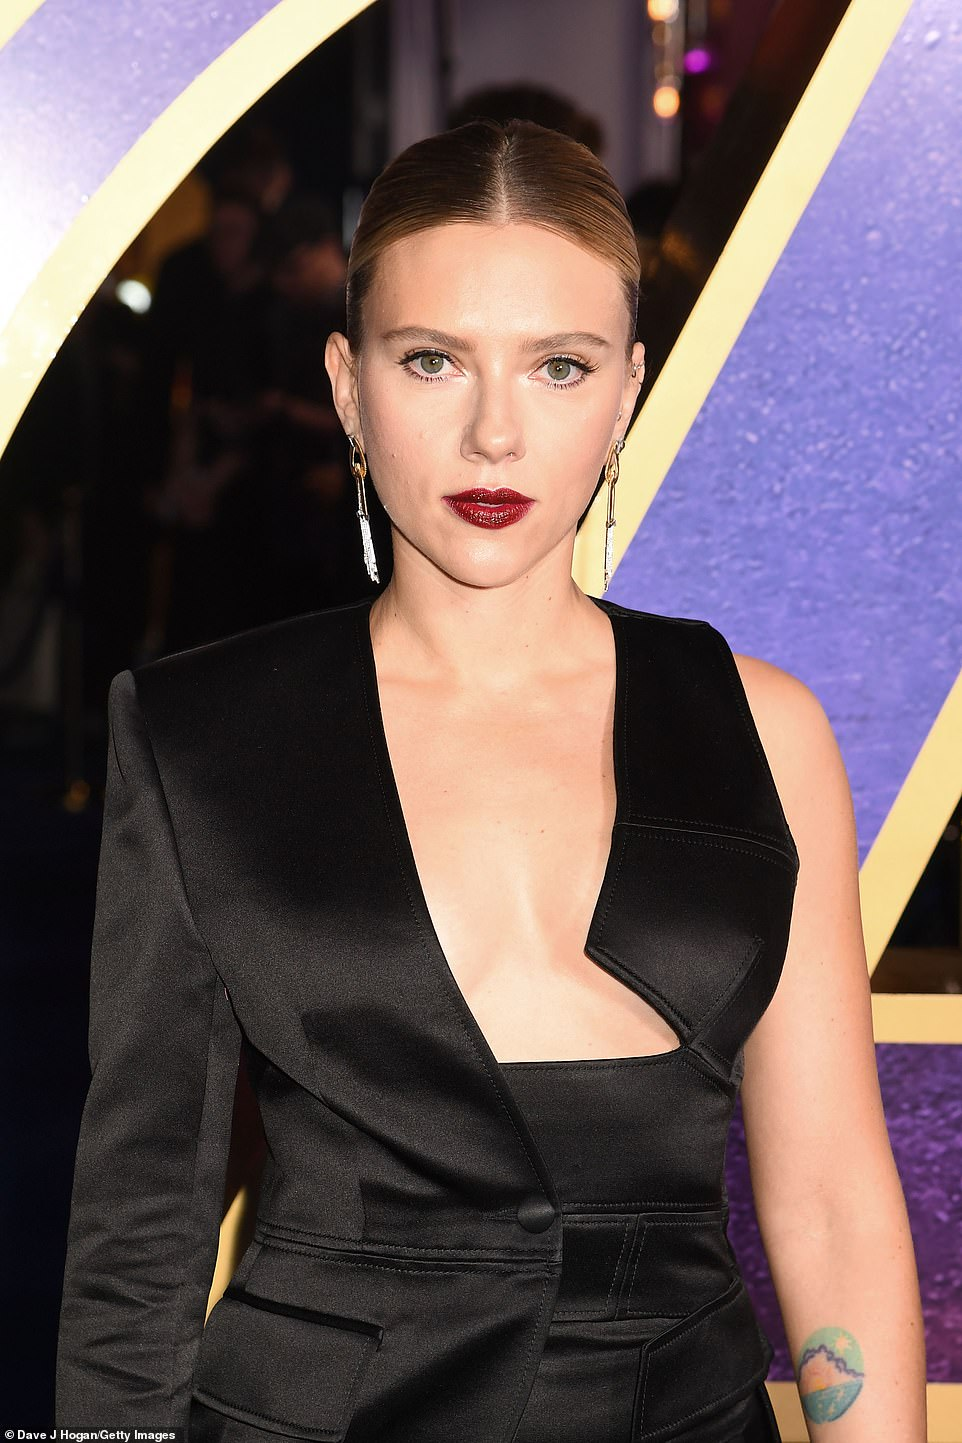 Scarlett wearing a Torm Ford suit